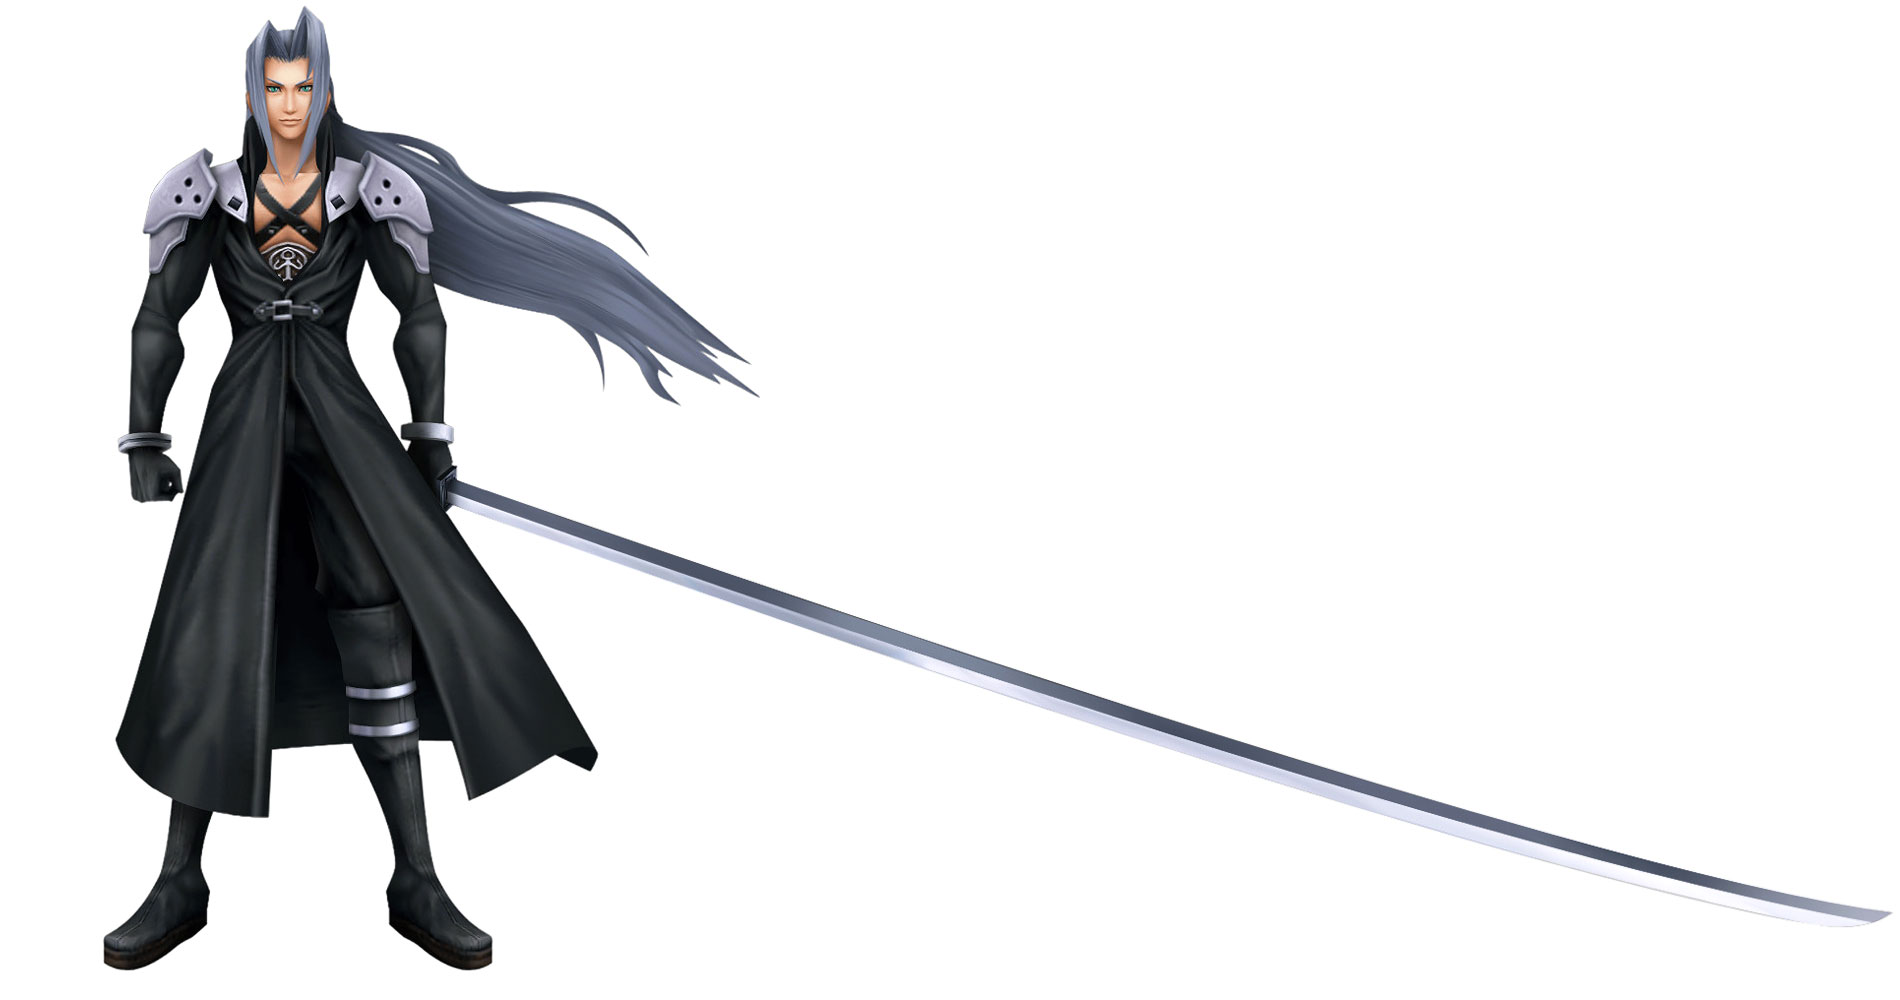 Mod Request Sephiroth From Final Fantasy And His Katana